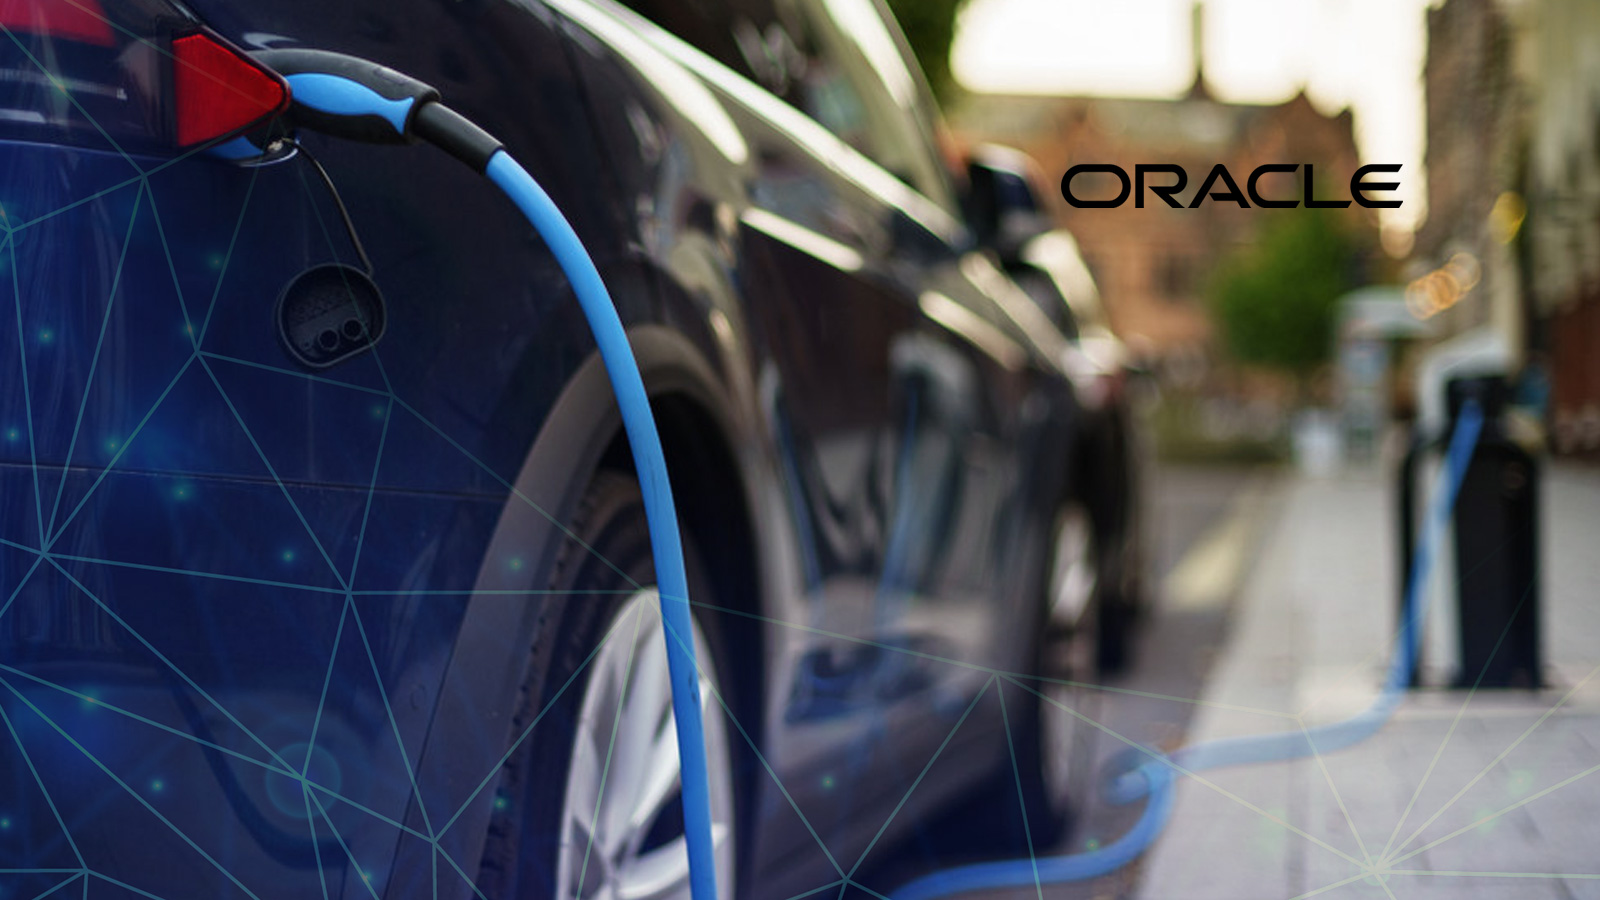 Electric Vehicle Manufacturers North America Utilities Test Drive Analytics From Oracle To Manage Influx